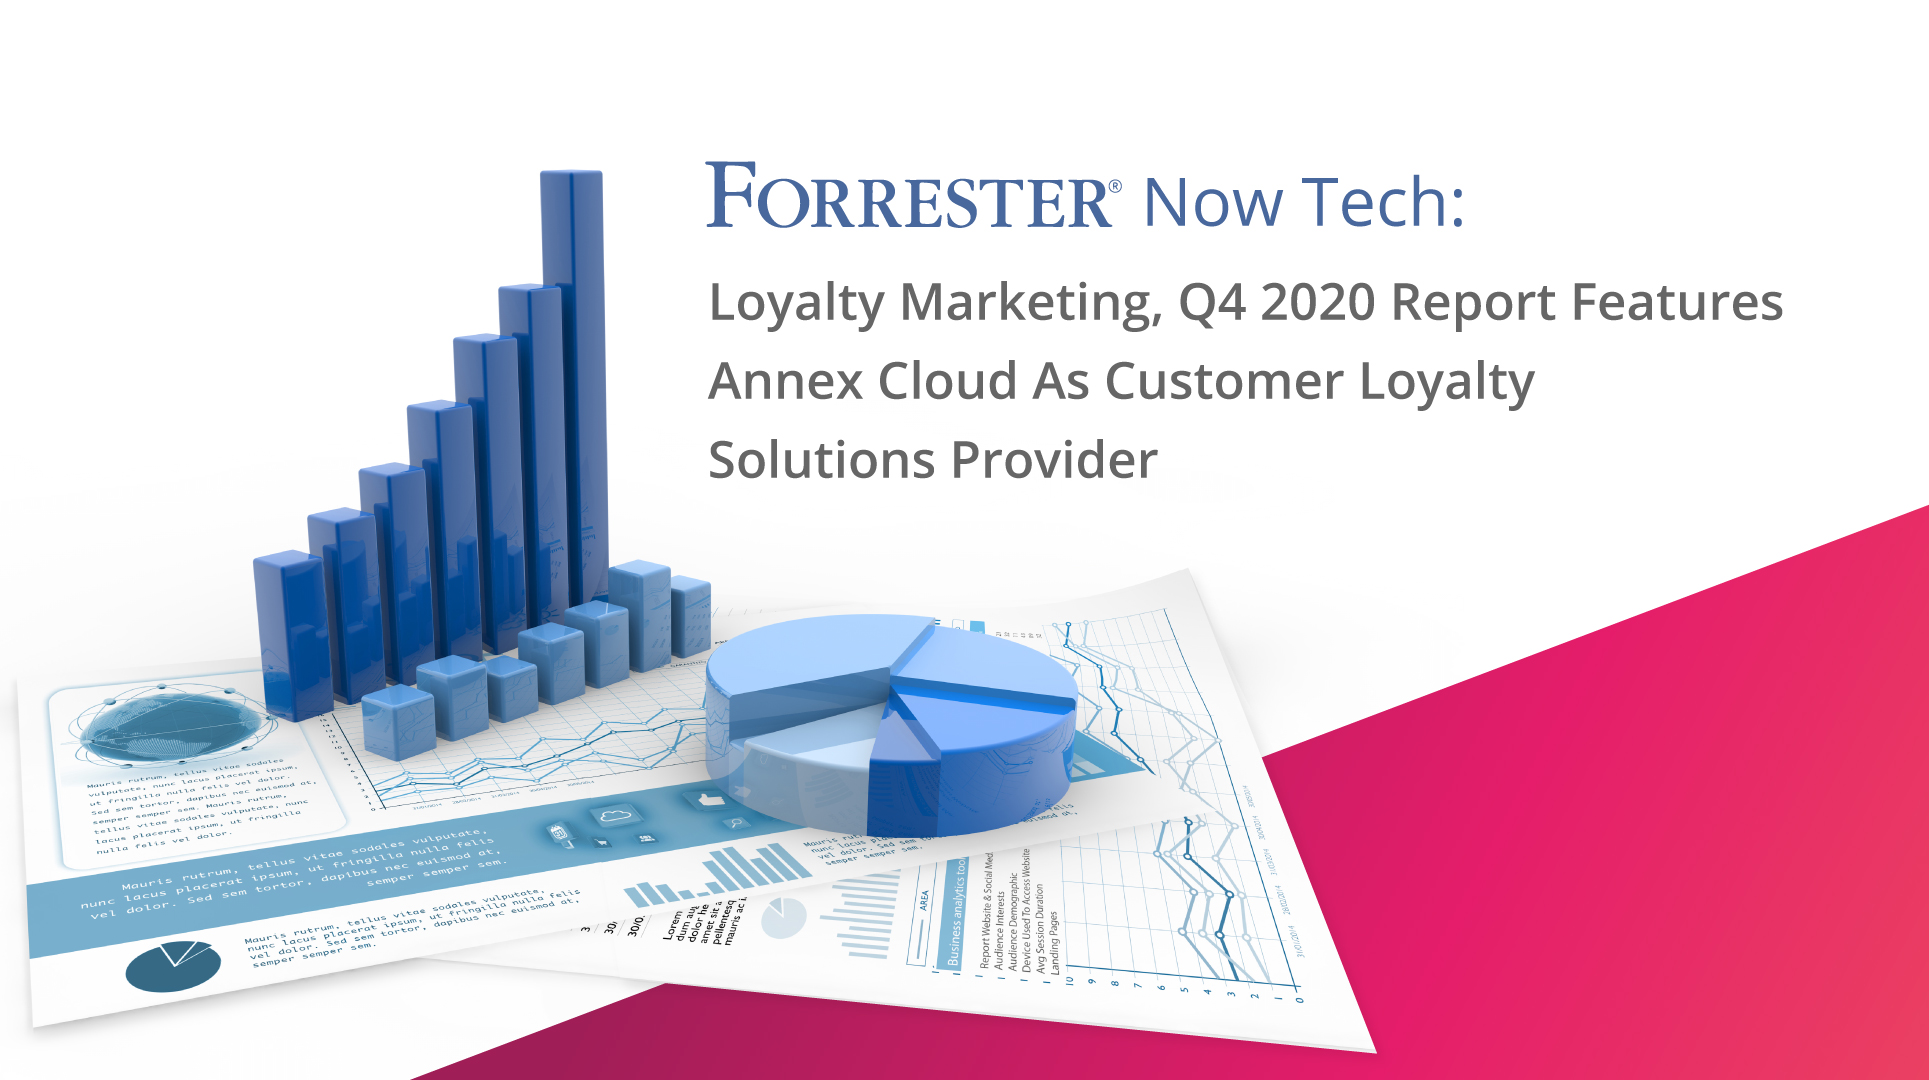 Annex Cloud, a leading customer loyalty solutions provider firm has been included in Forrester Now Tech Loyalty Marketing, Q4 2020 Report